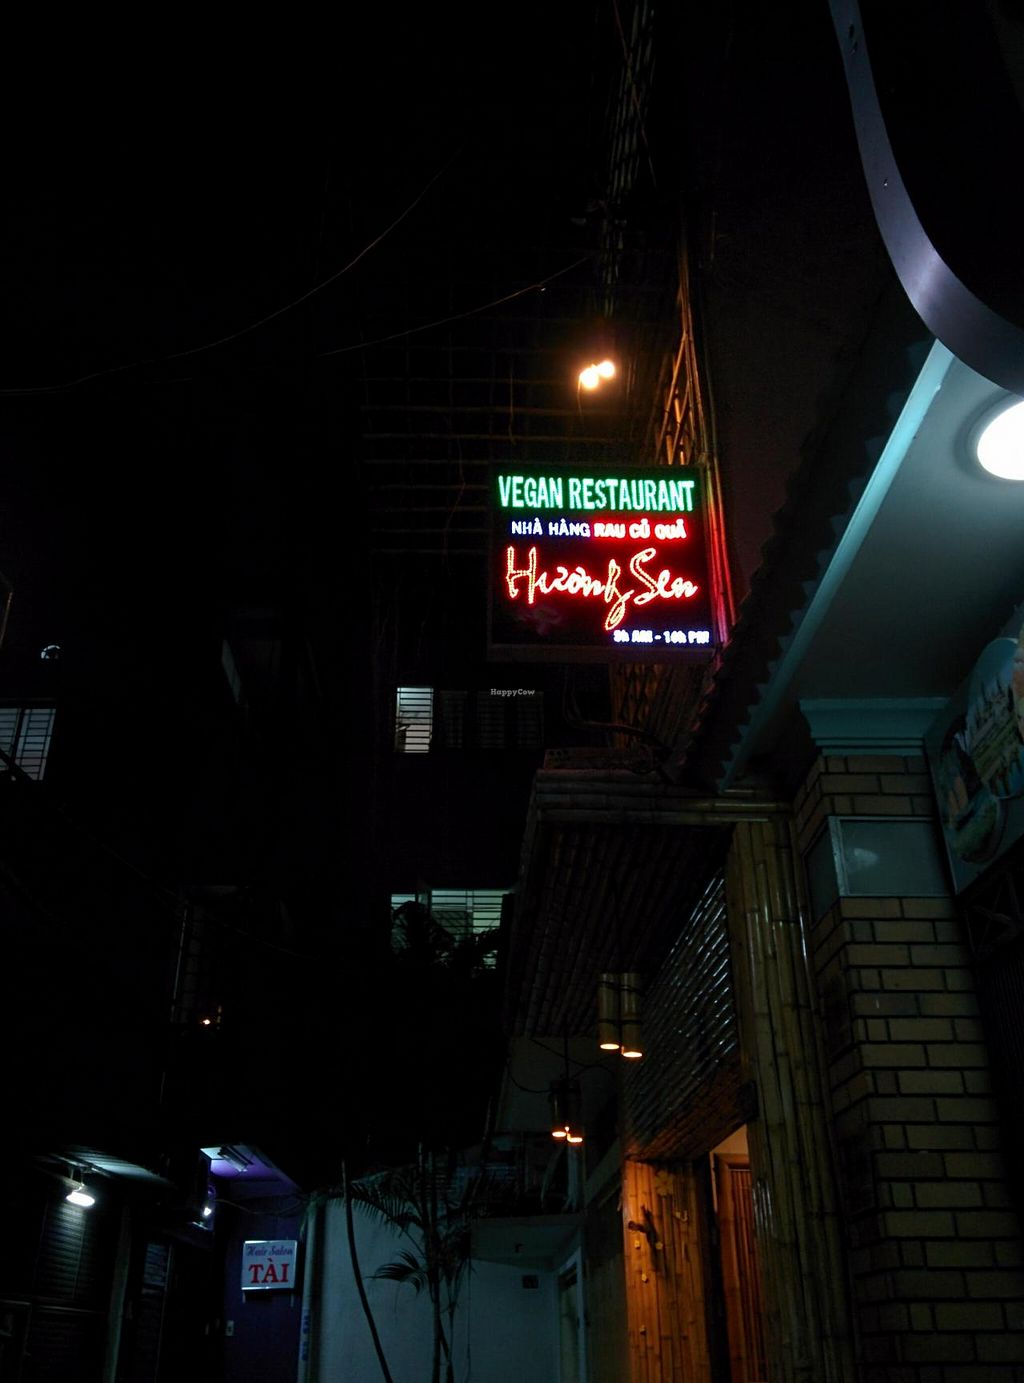 """Photo of Huong Sen Vegetarian - Bui Vien St  by <a href=""""/members/profile/philjdomm"""">philjdomm</a> <br/>2014 old location <br/> May 12, 2014  - <a href='/contact/abuse/image/35854/69853'>Report</a>"""